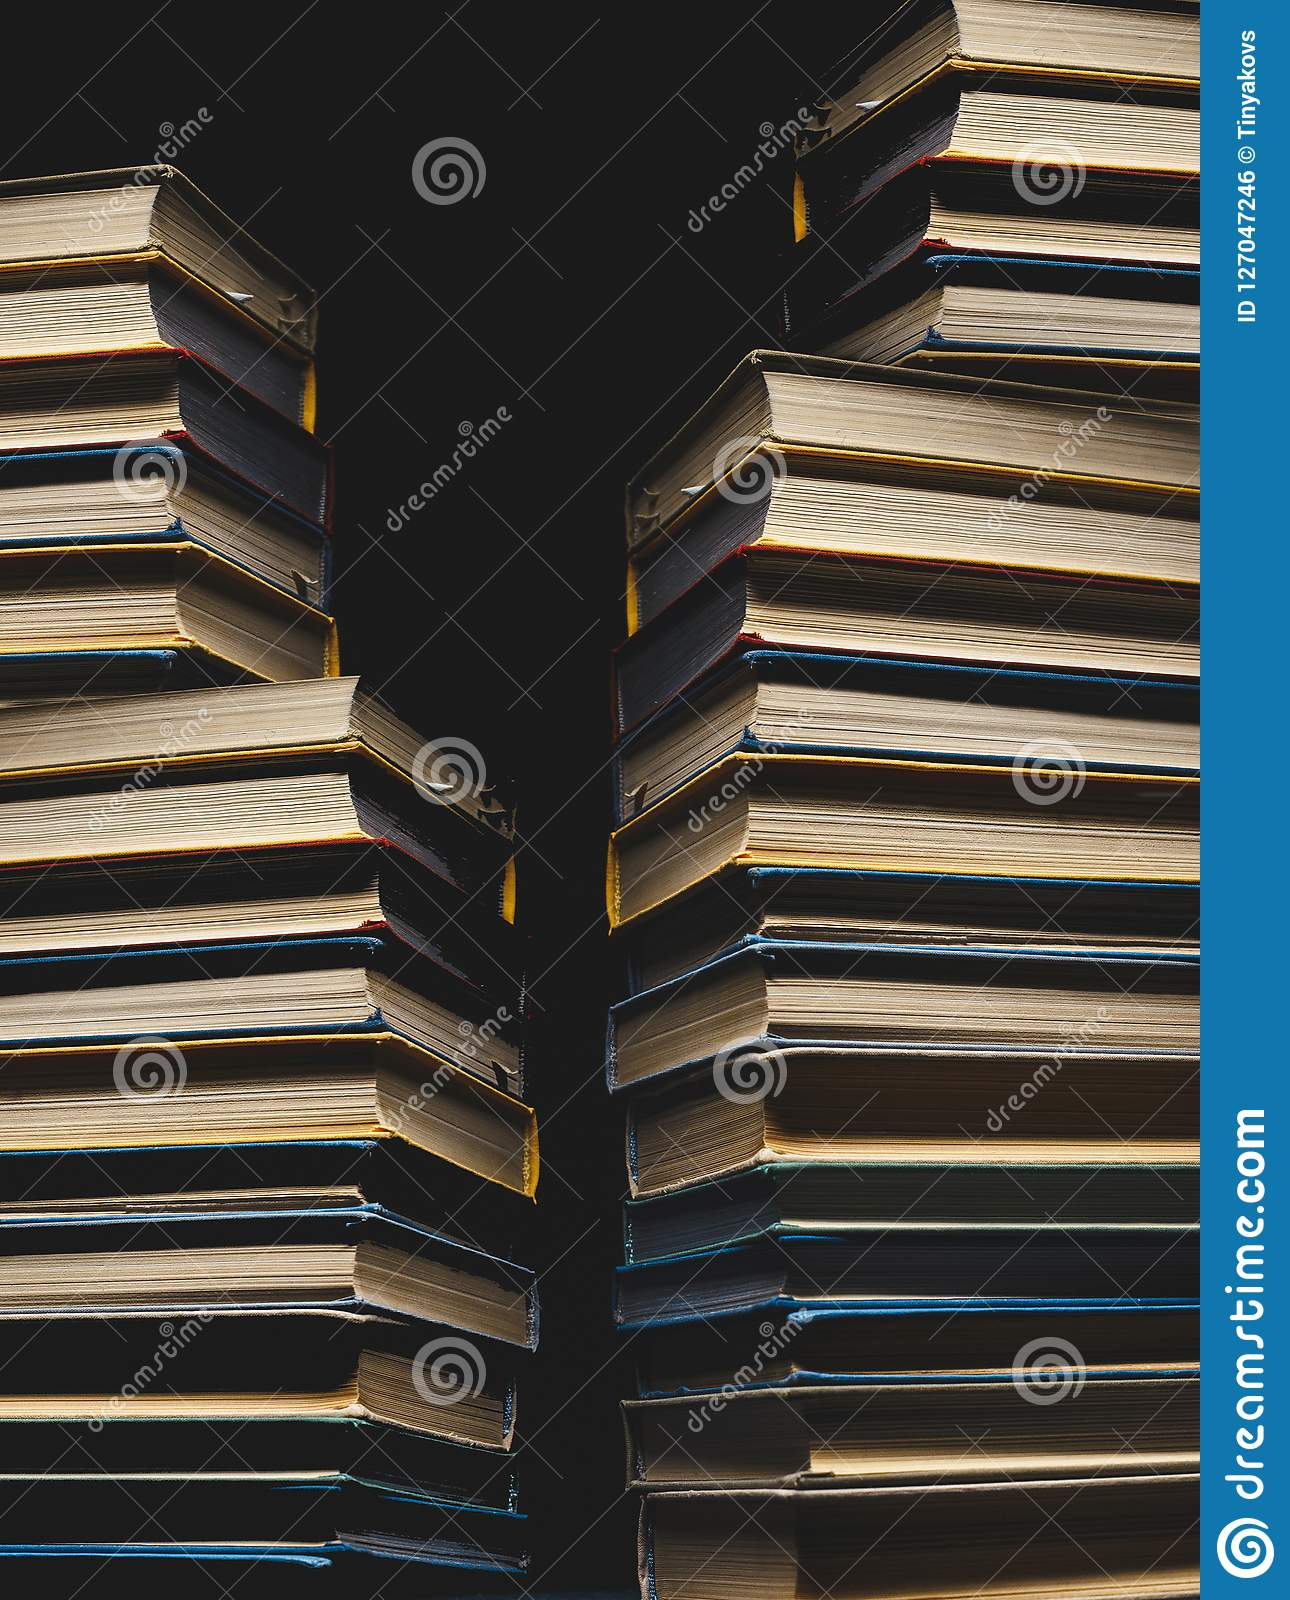 Concept Of Education And Knowledge. Tower Building Of Old Multicolored Books On A Black Background